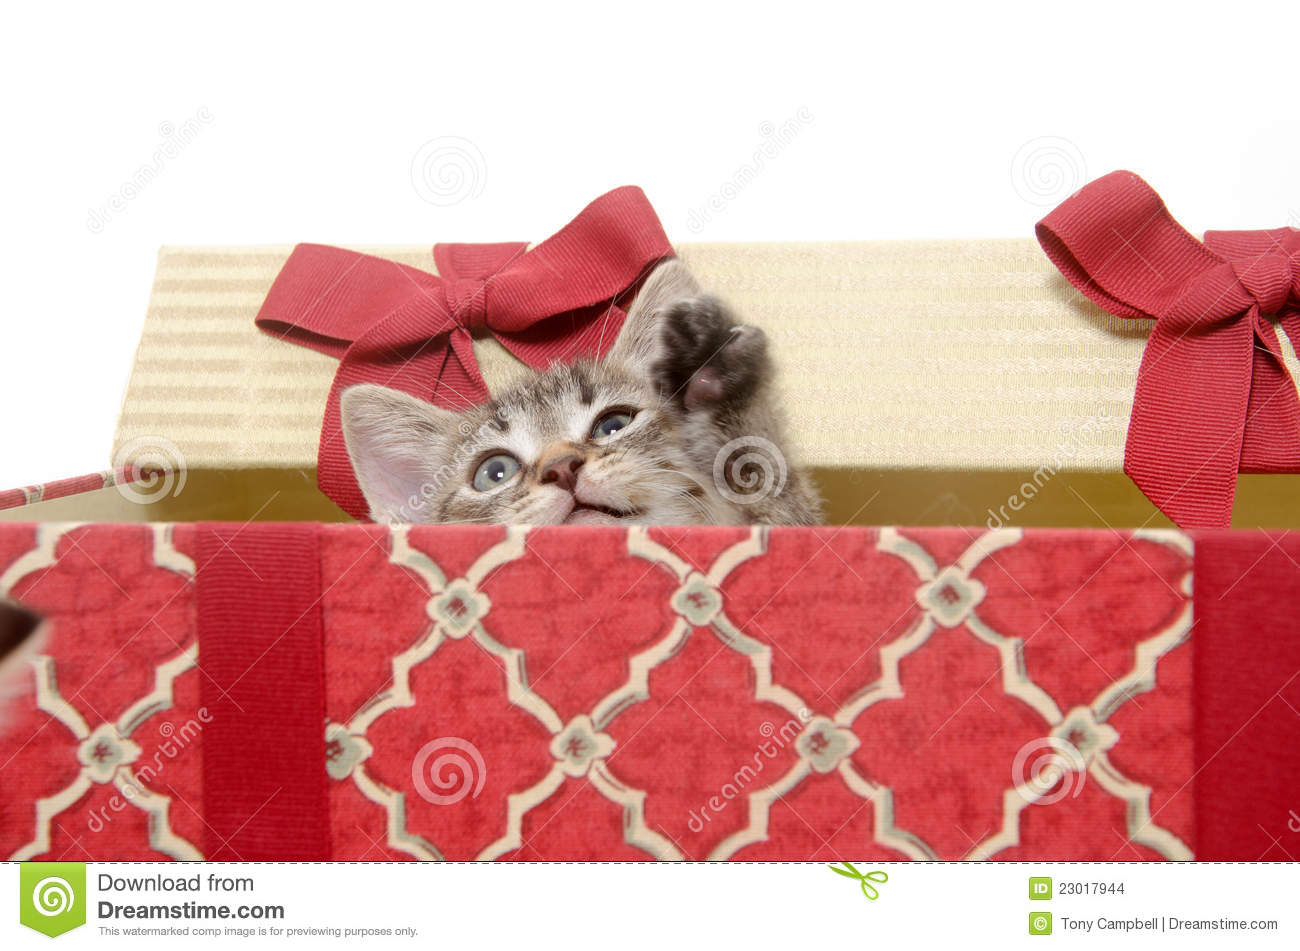 Cute Kitten In Christmas Basket Stock Images - Image: 23017944